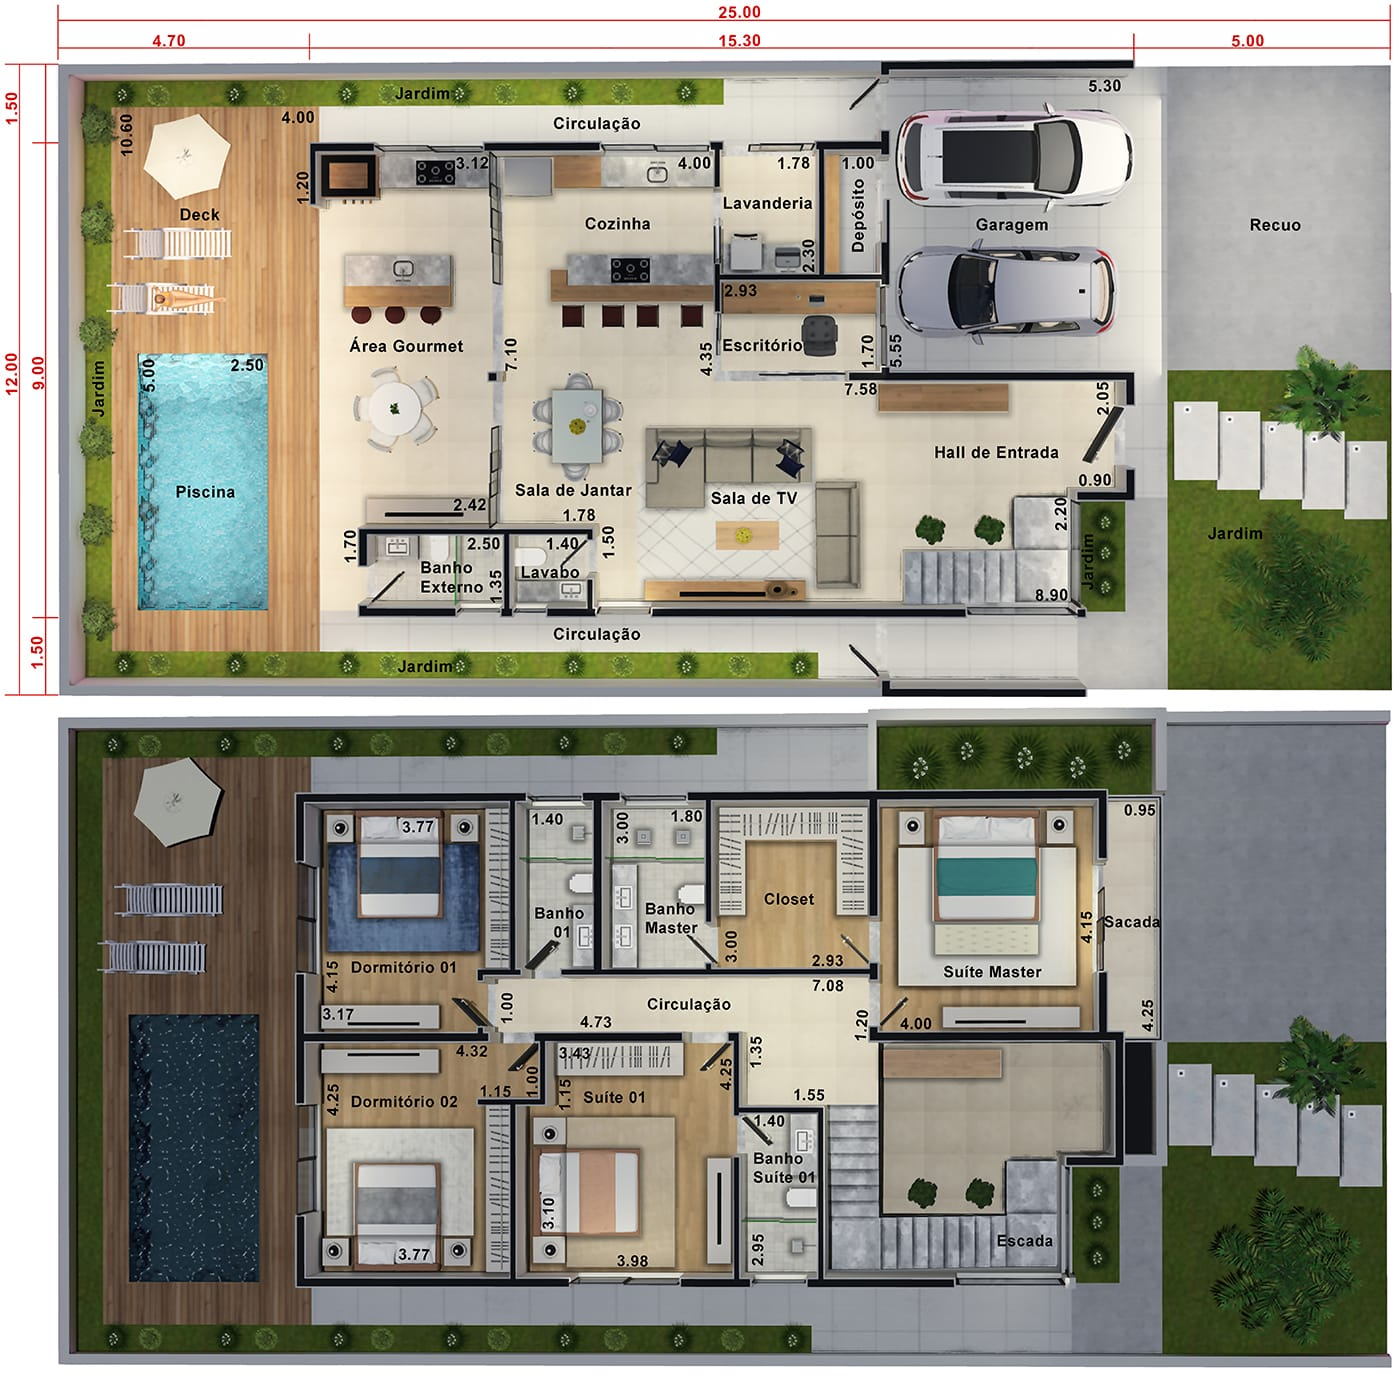 Floor plan with master suite and balcony12x25